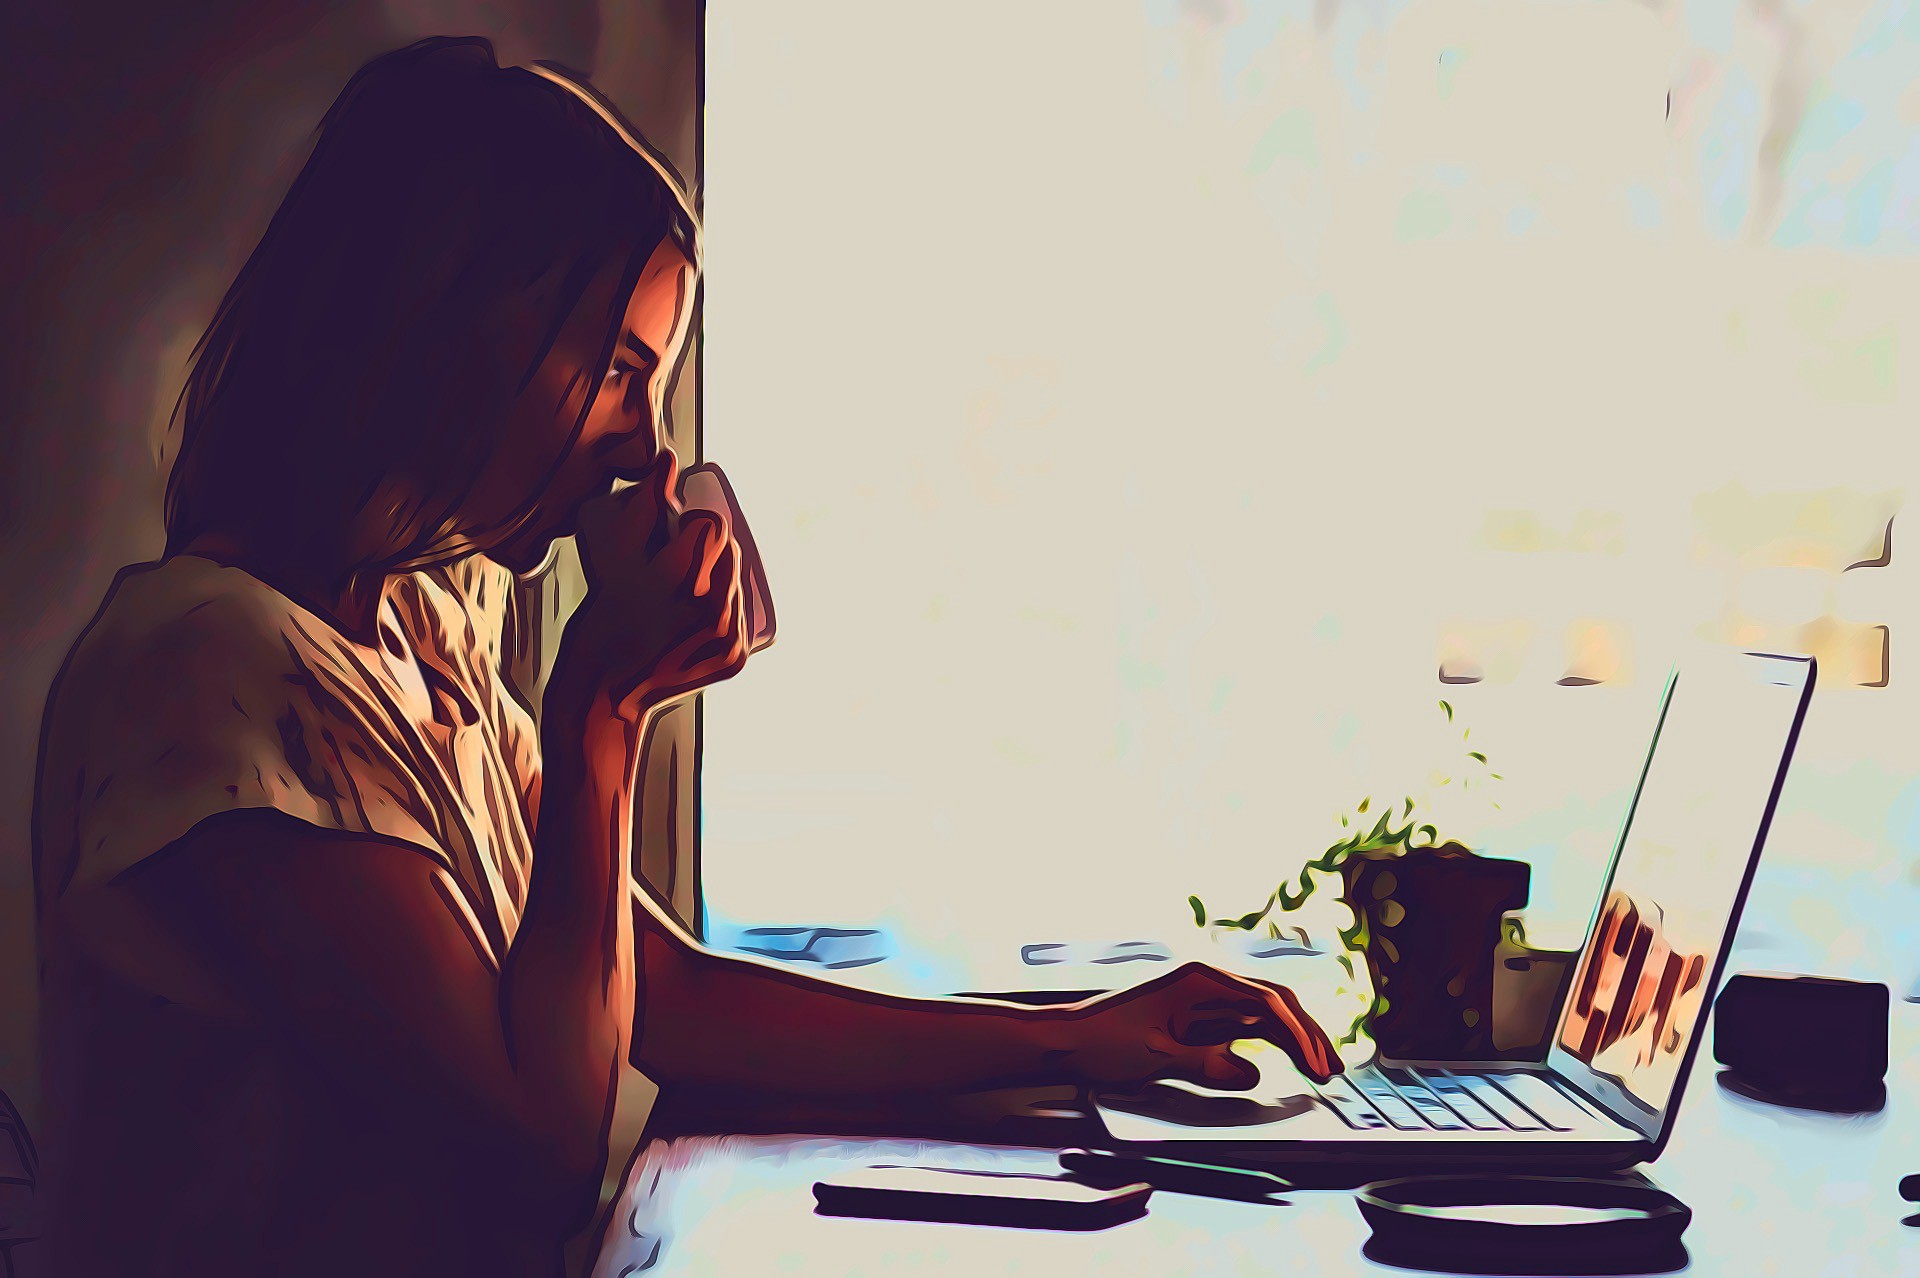 Woman sipping coffee, looking pensively at her laptop